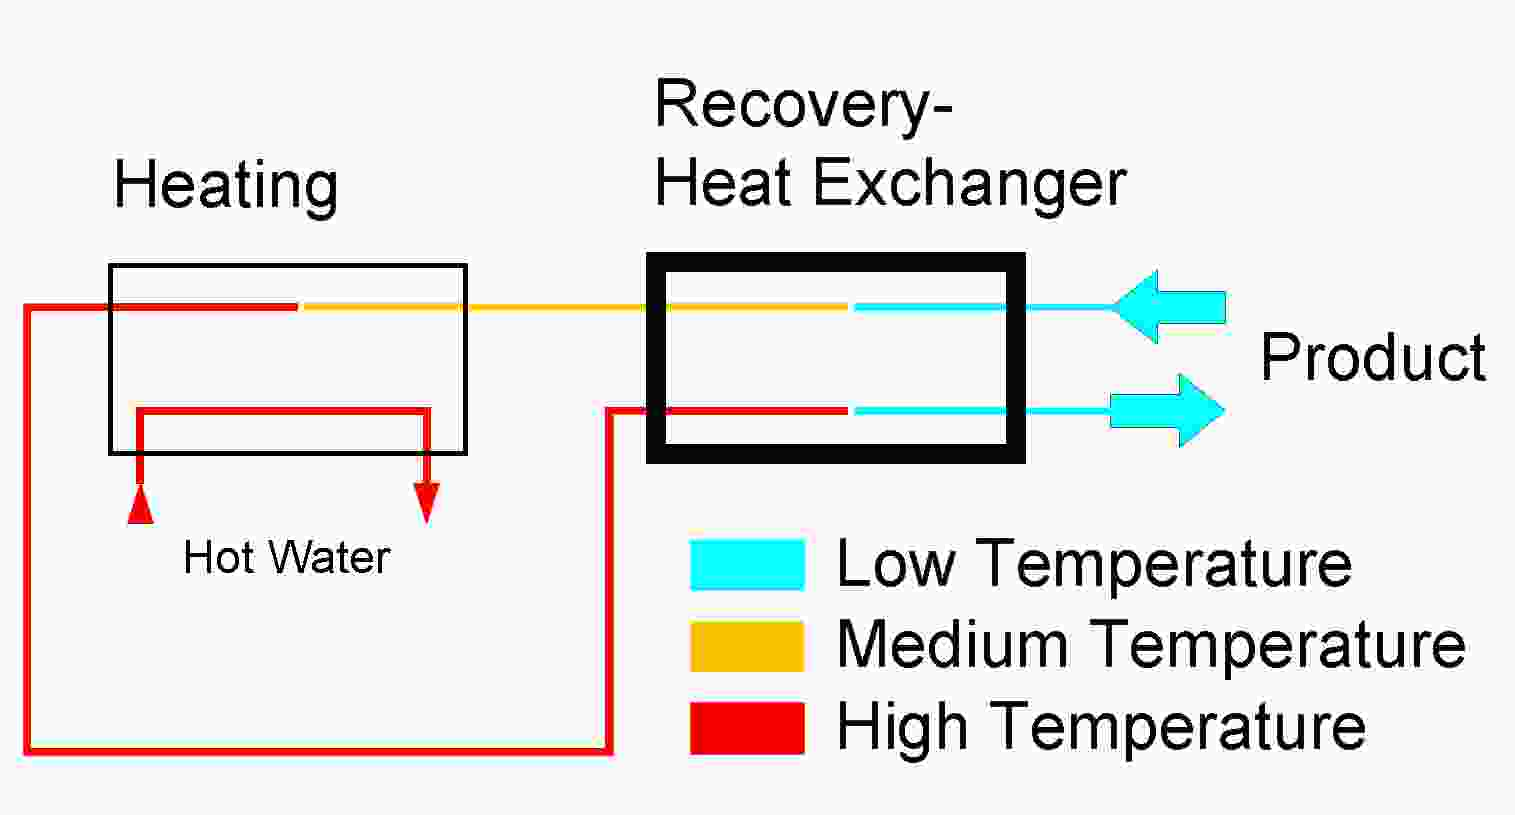 Recovery Heat Exchanger 1